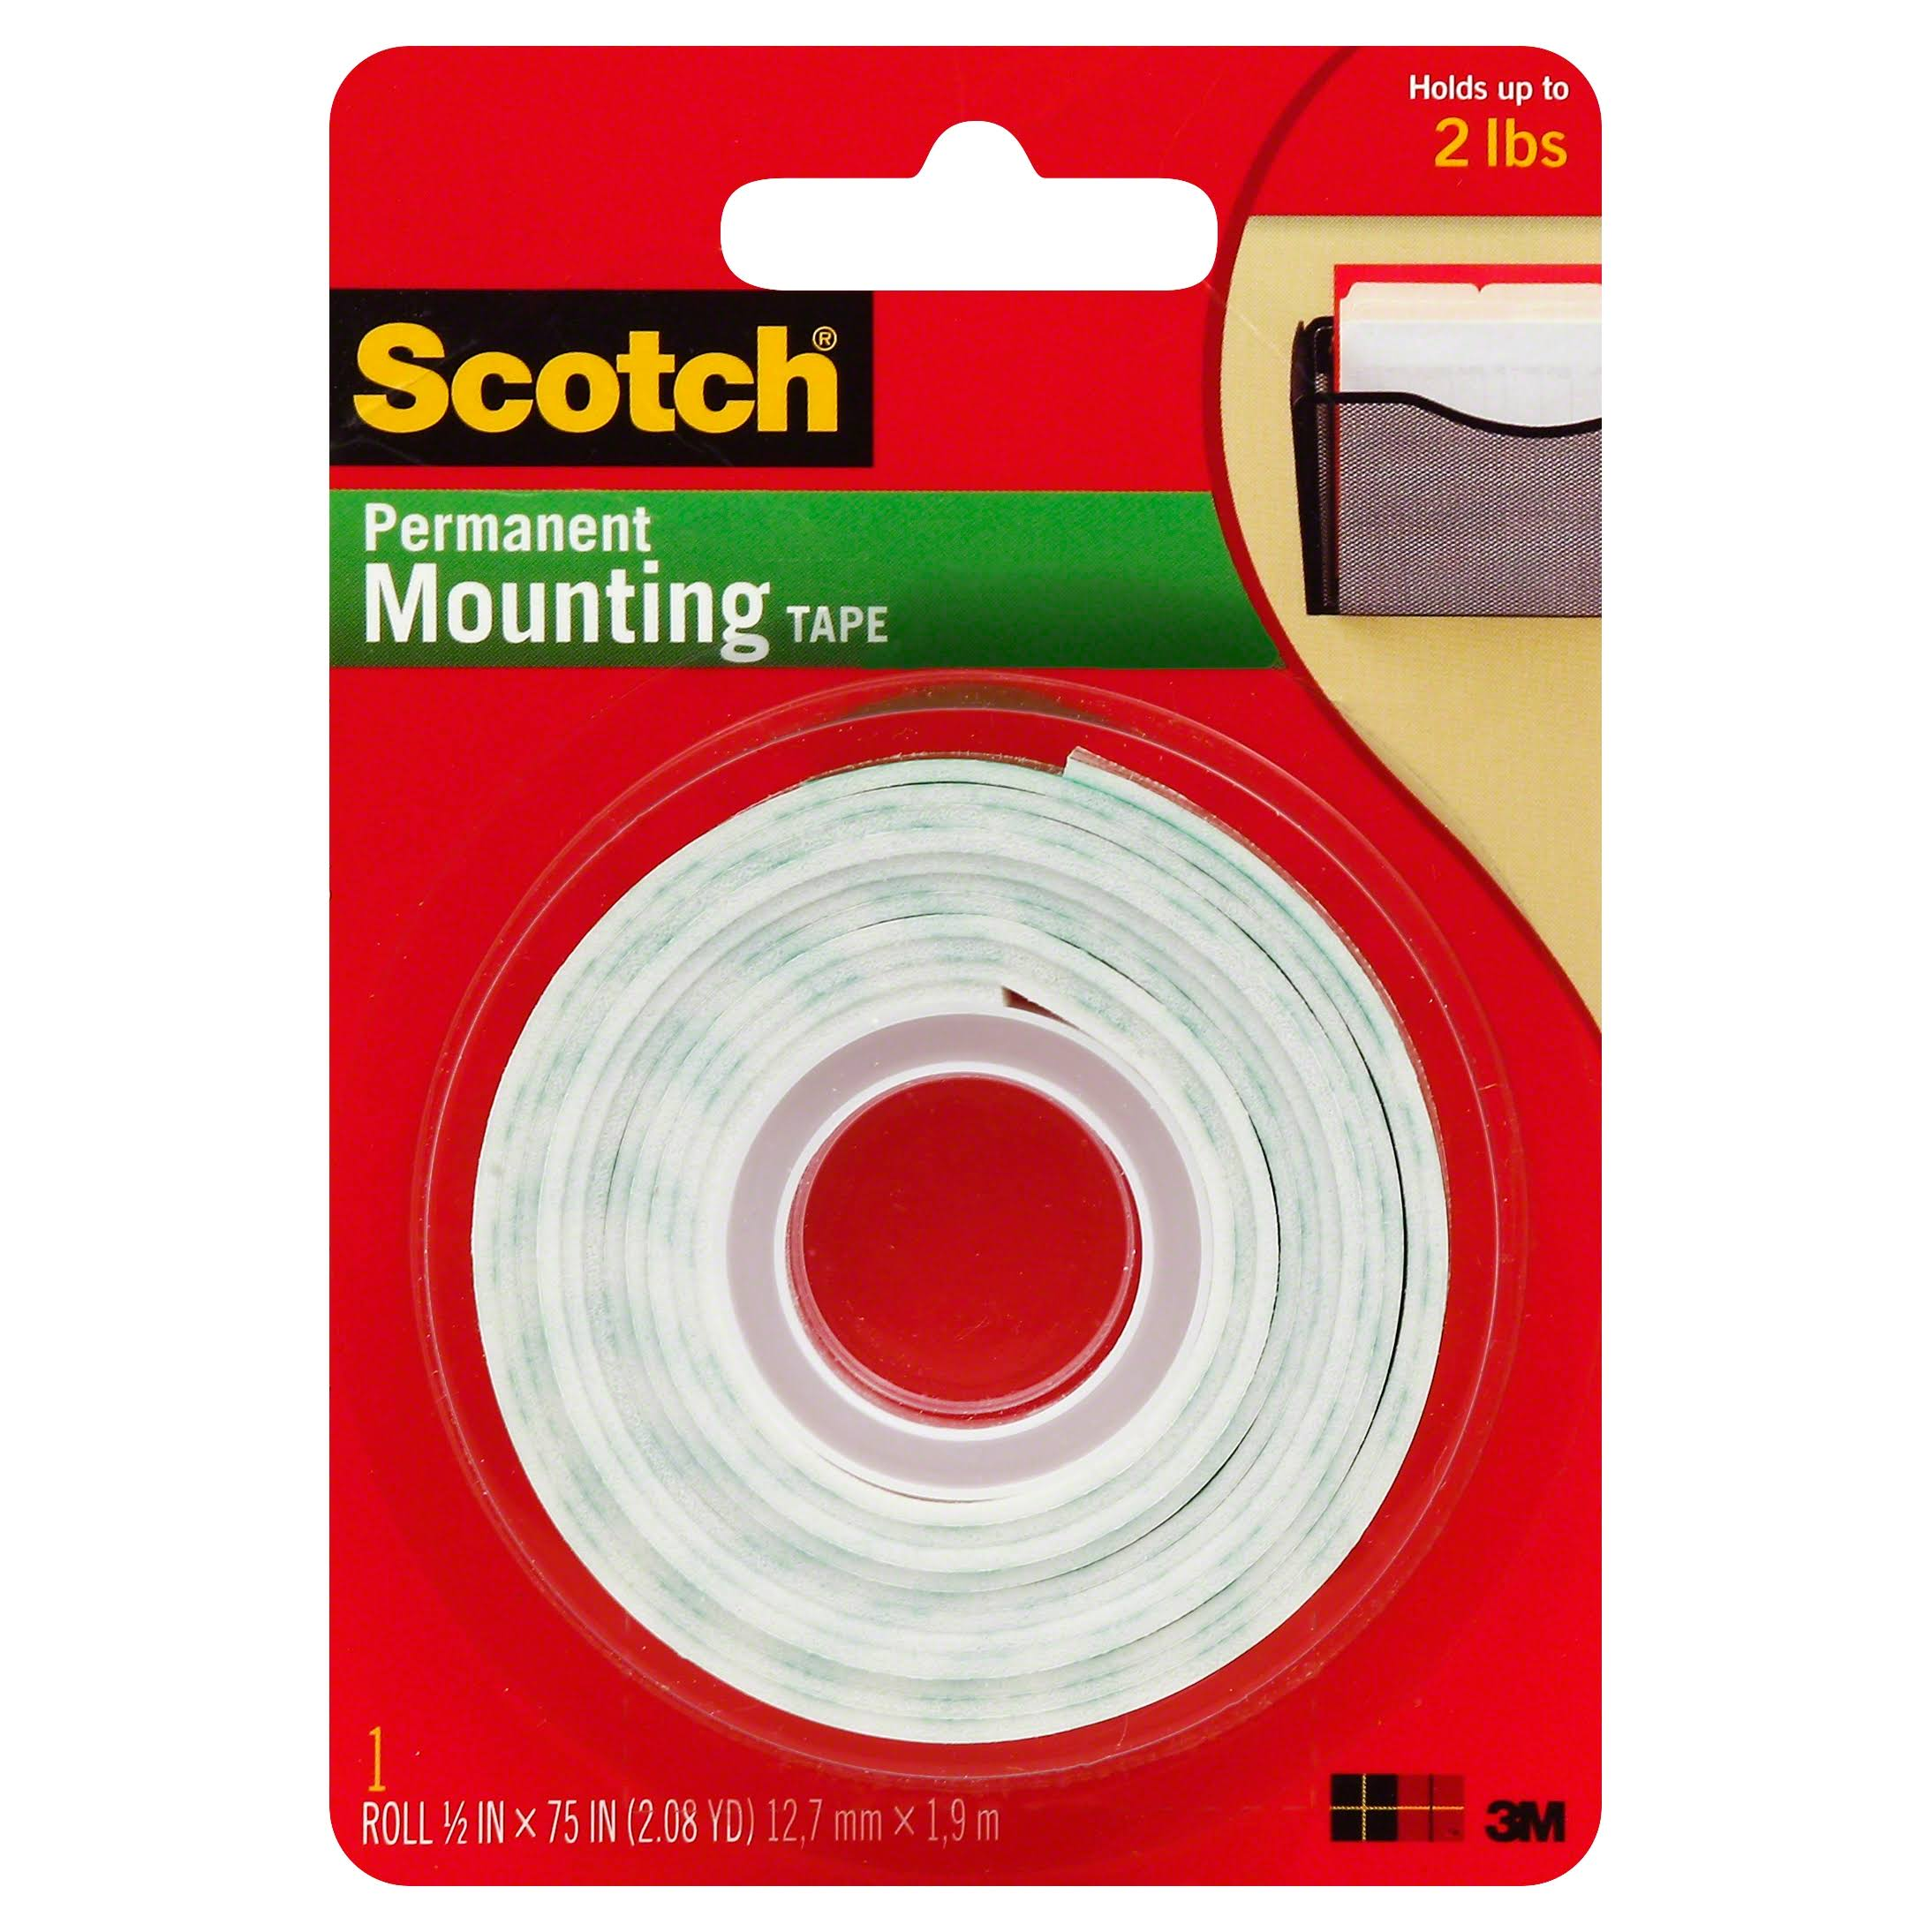 Scotch Mounting Tape - 5in x 75in